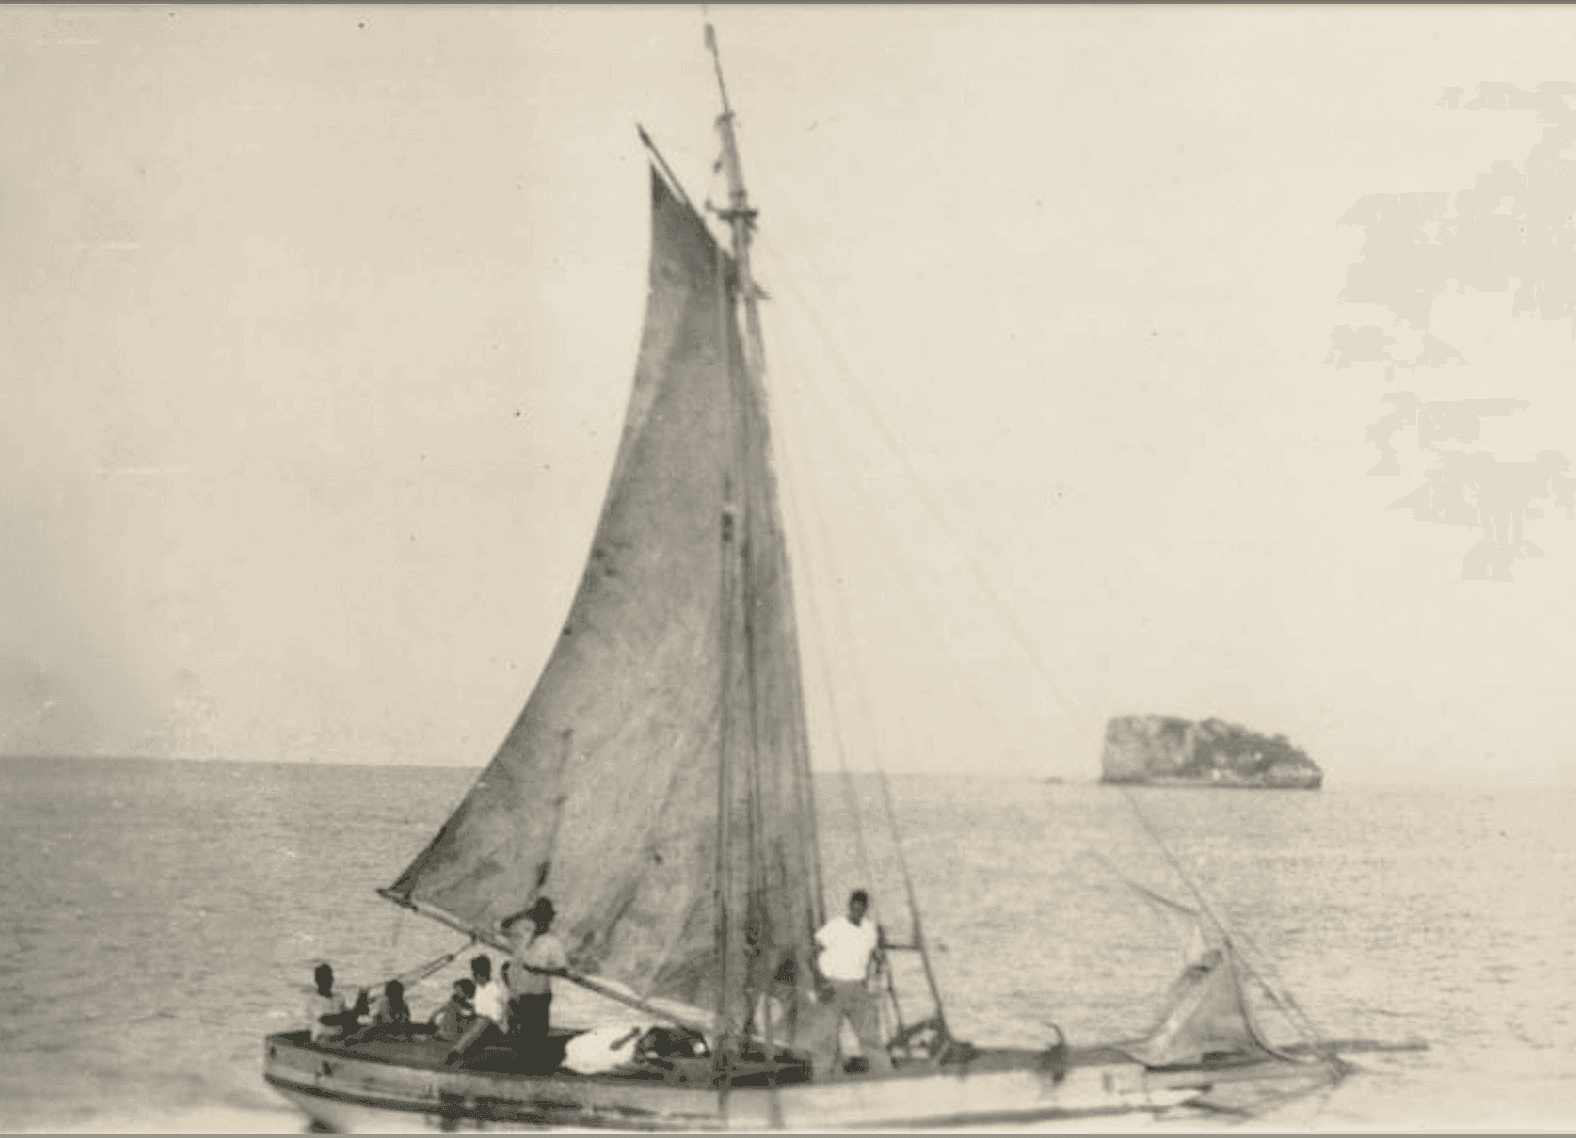 The Loss of the British sloop, KITE from Tortola, British Virgin Islands ~ 1901 By Valerie Sims